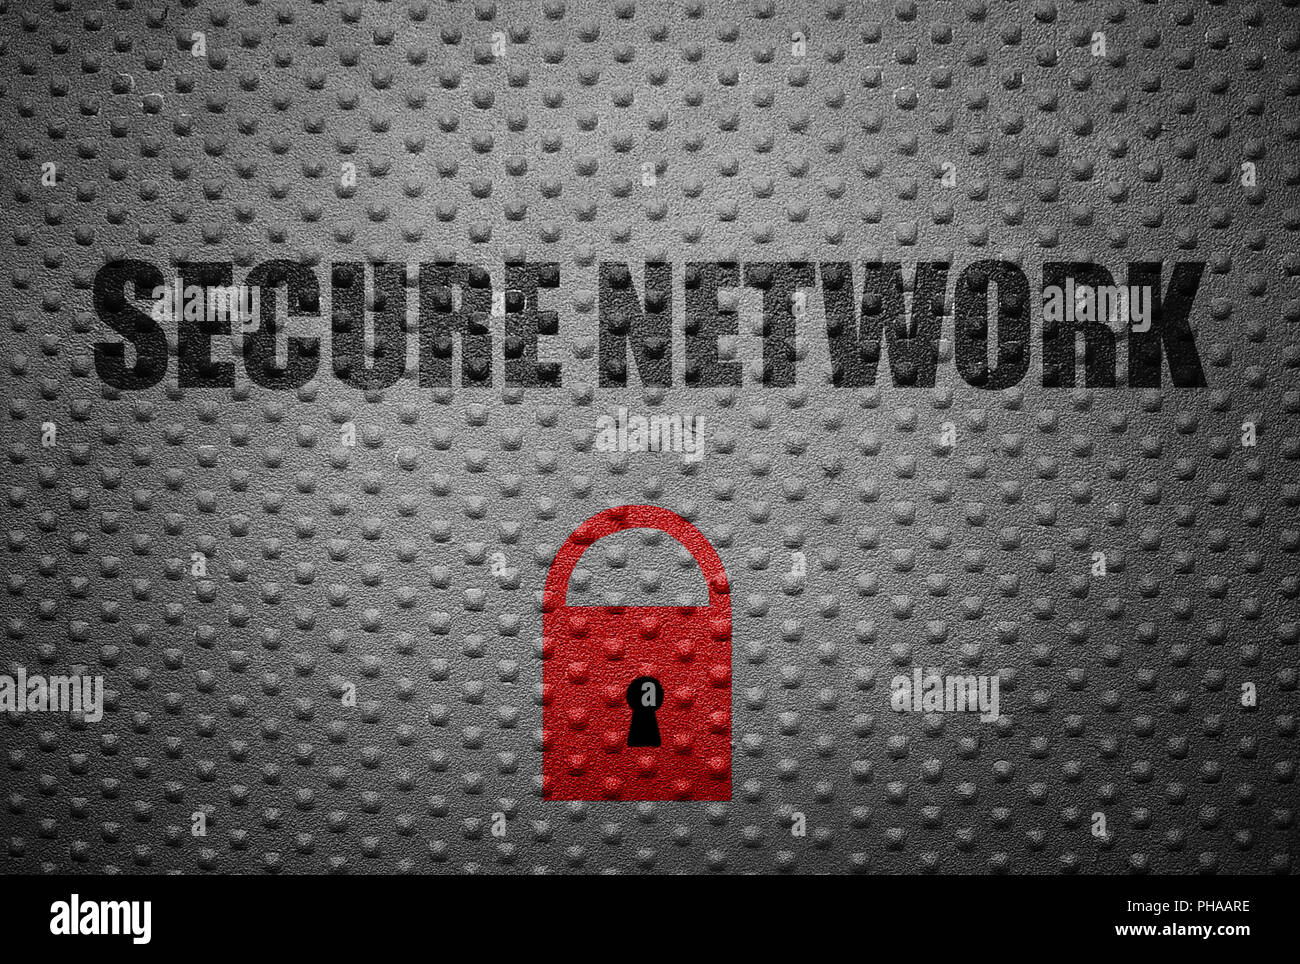 Secure computer network concept Stock Photo